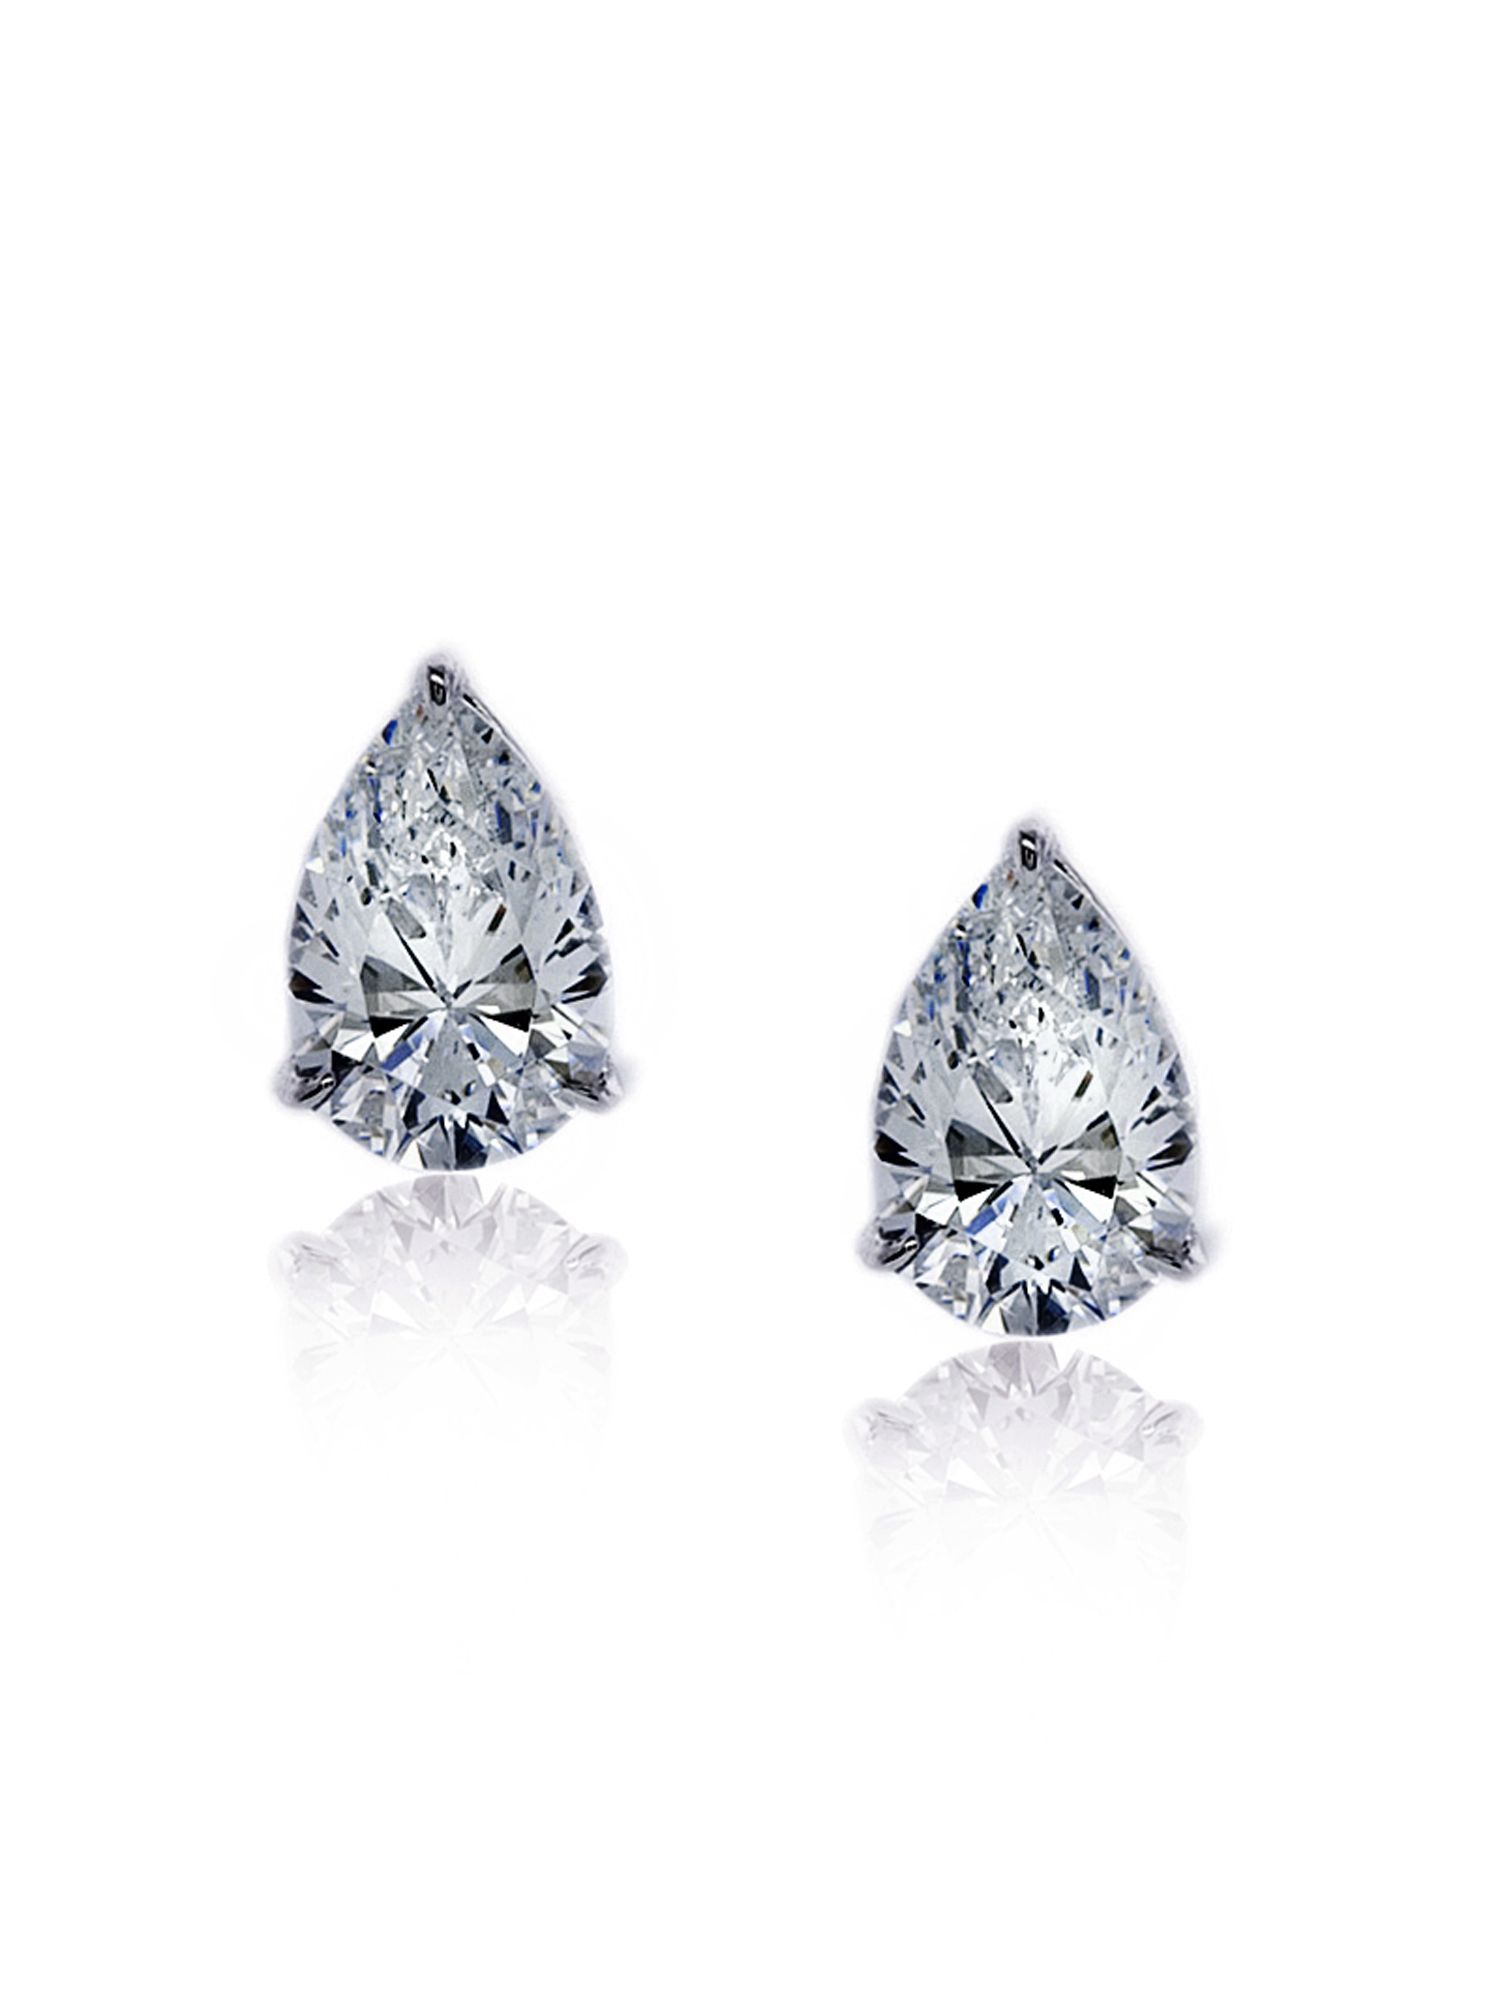 0.5ct Pear Solitaire Studs